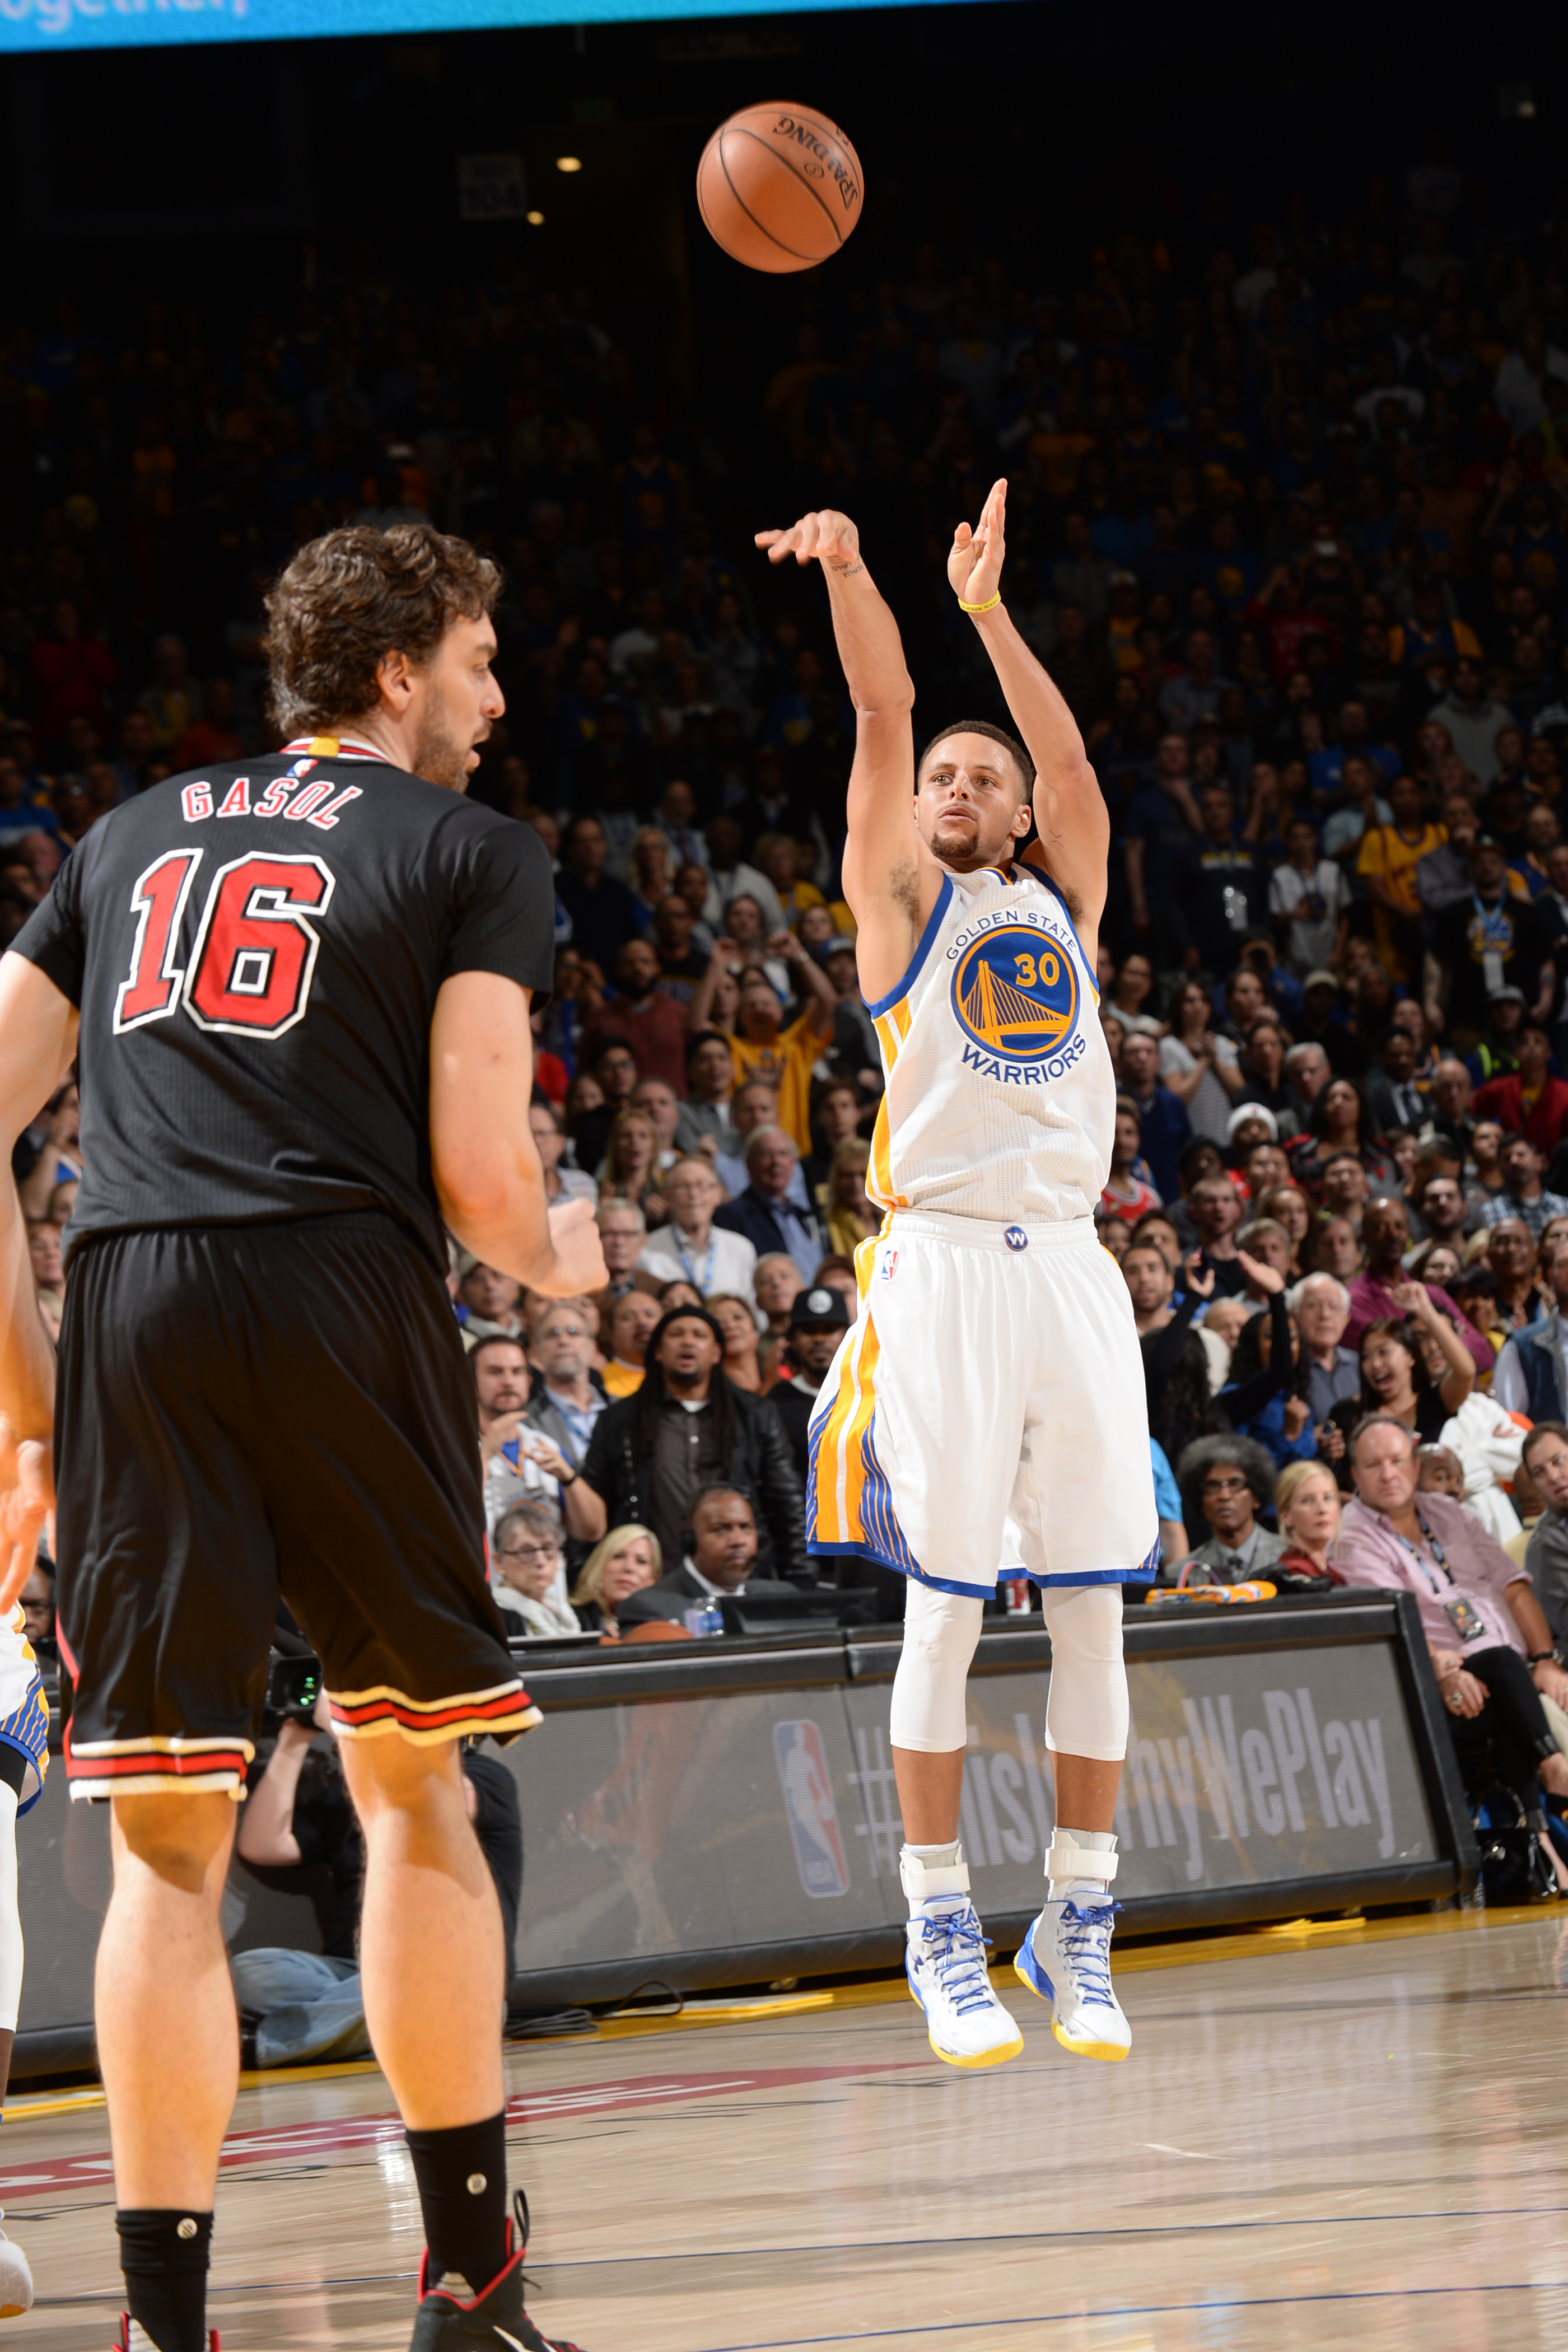 OAKLAND, CA - NOVEMBER 20: Stephen Curry #30 of the Golden State Warriors shoots against the Chicago Bulls during the game on November 20, 2015 at ORACLE Arena in Oakland, California . (Photo by Noah Graham/NBAE via Getty Images)